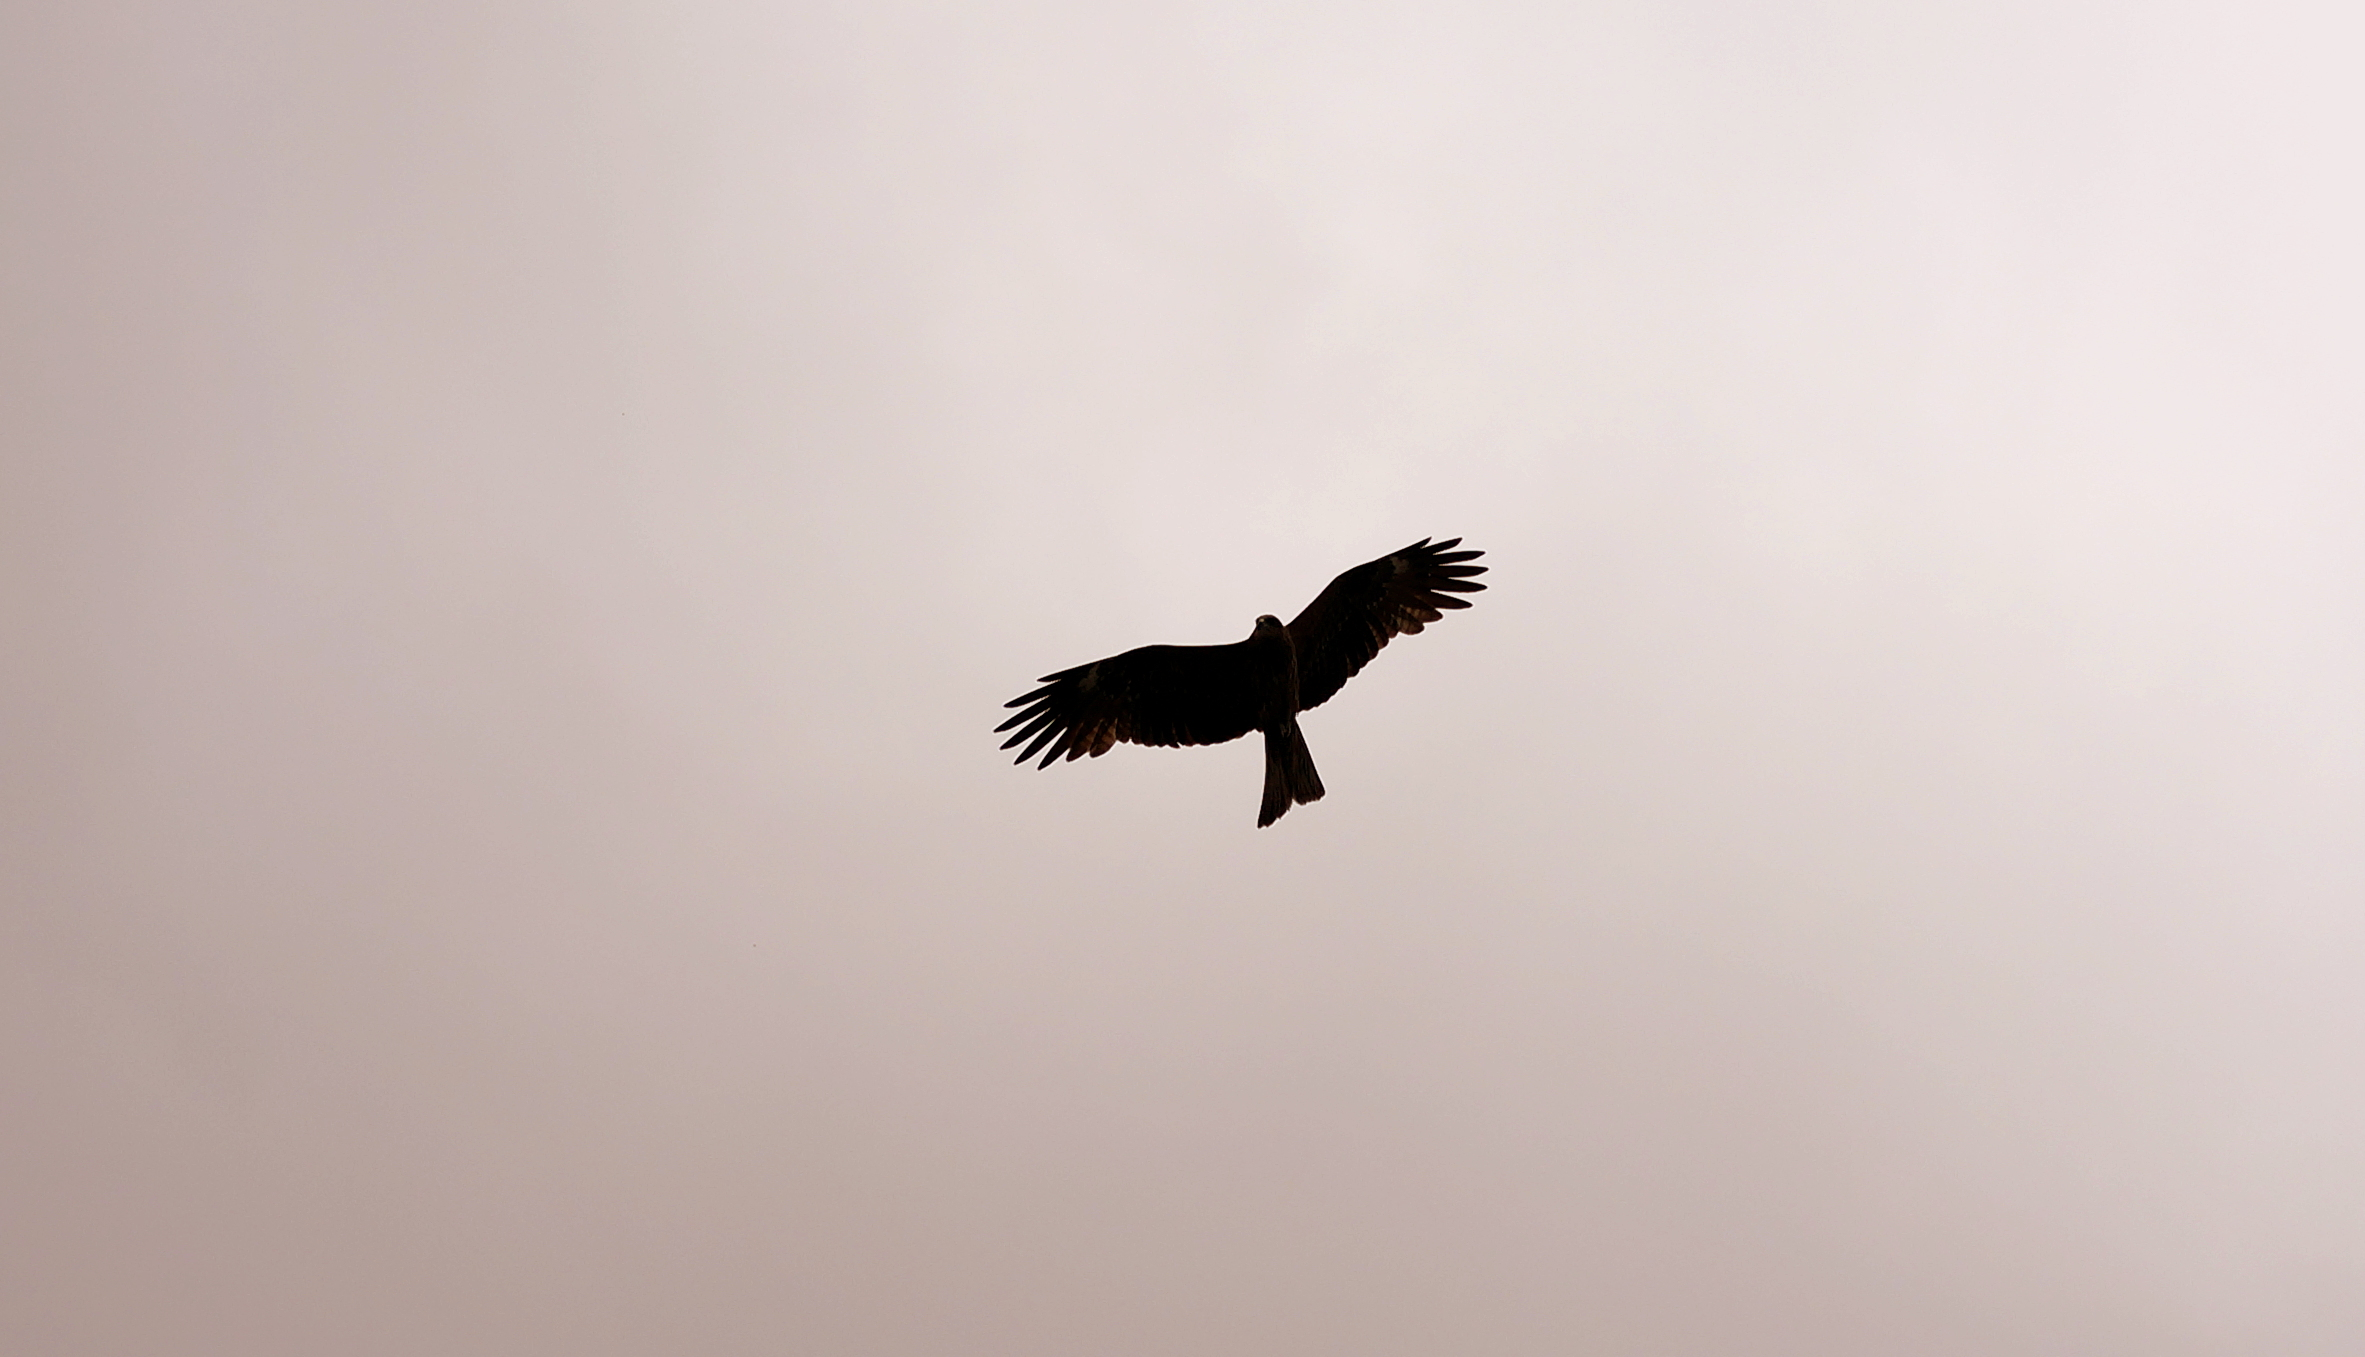 A common sight in the skies of Hong Kong - the Kite.